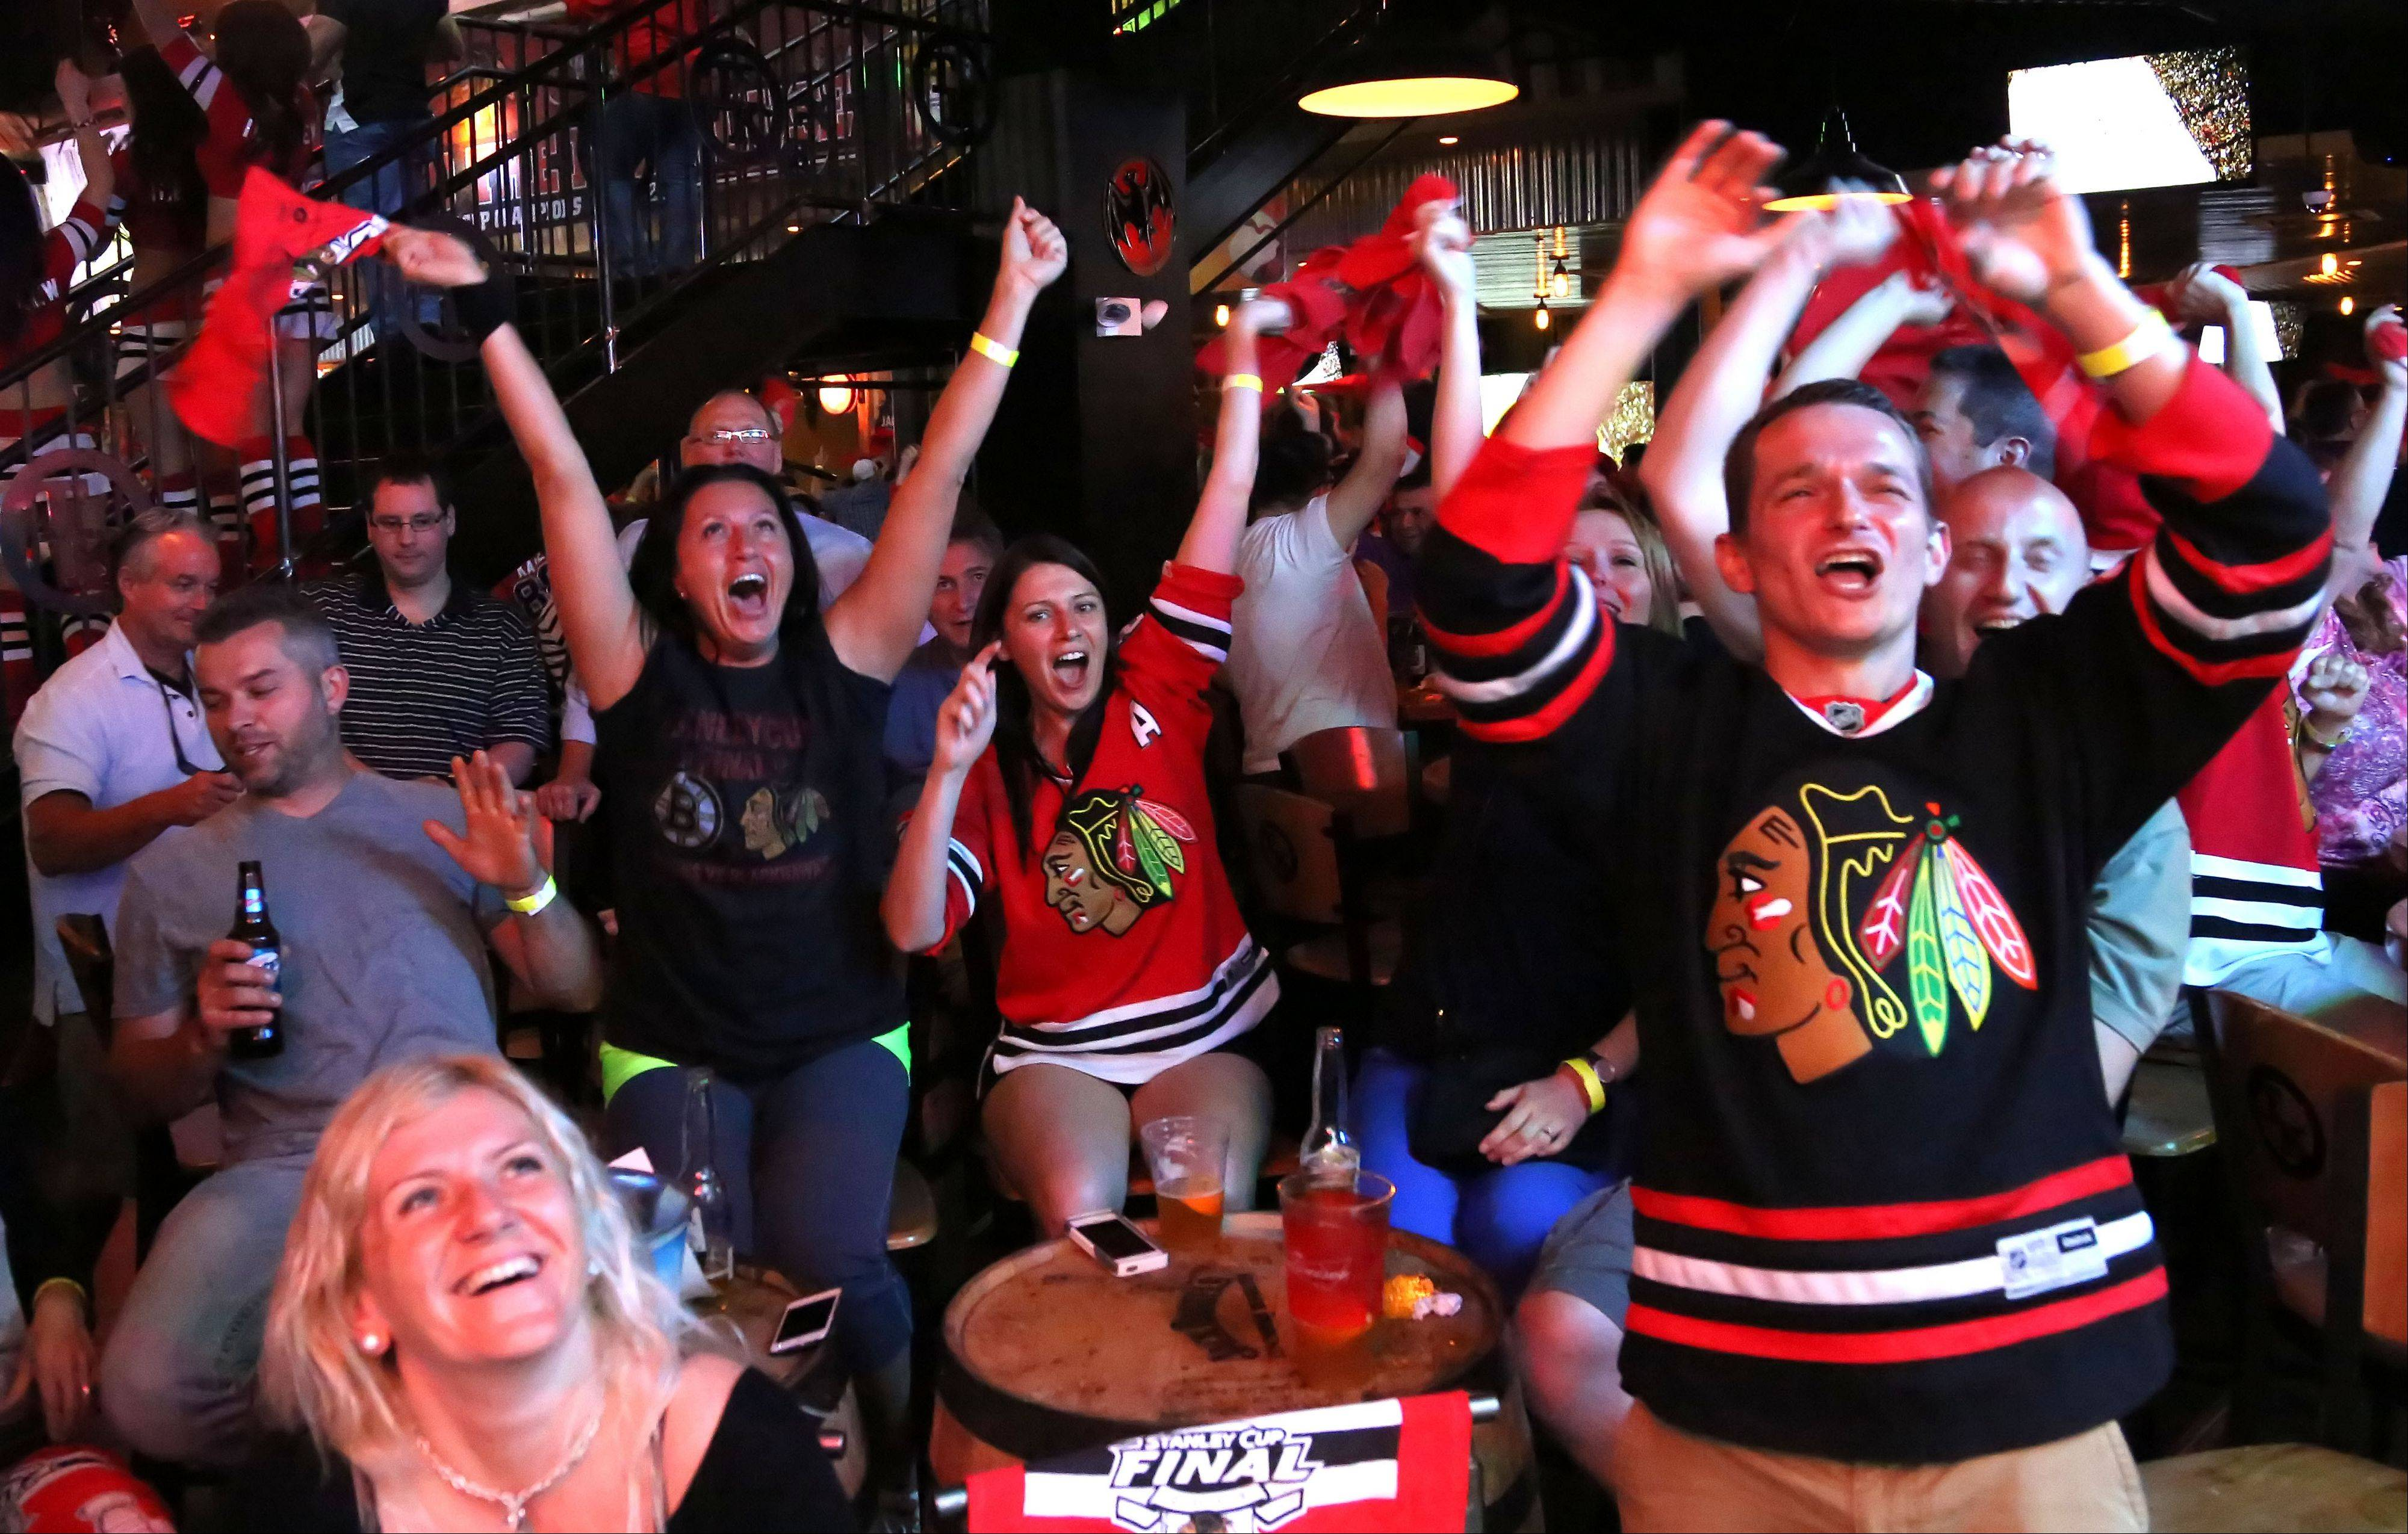 Hawks fans react after Jonathan Toews' goal in the second period as people packed into Toby Keith's I Love This Bar to watch Game 6 of the Stanley Cup Finals Monday night in Rosemont.